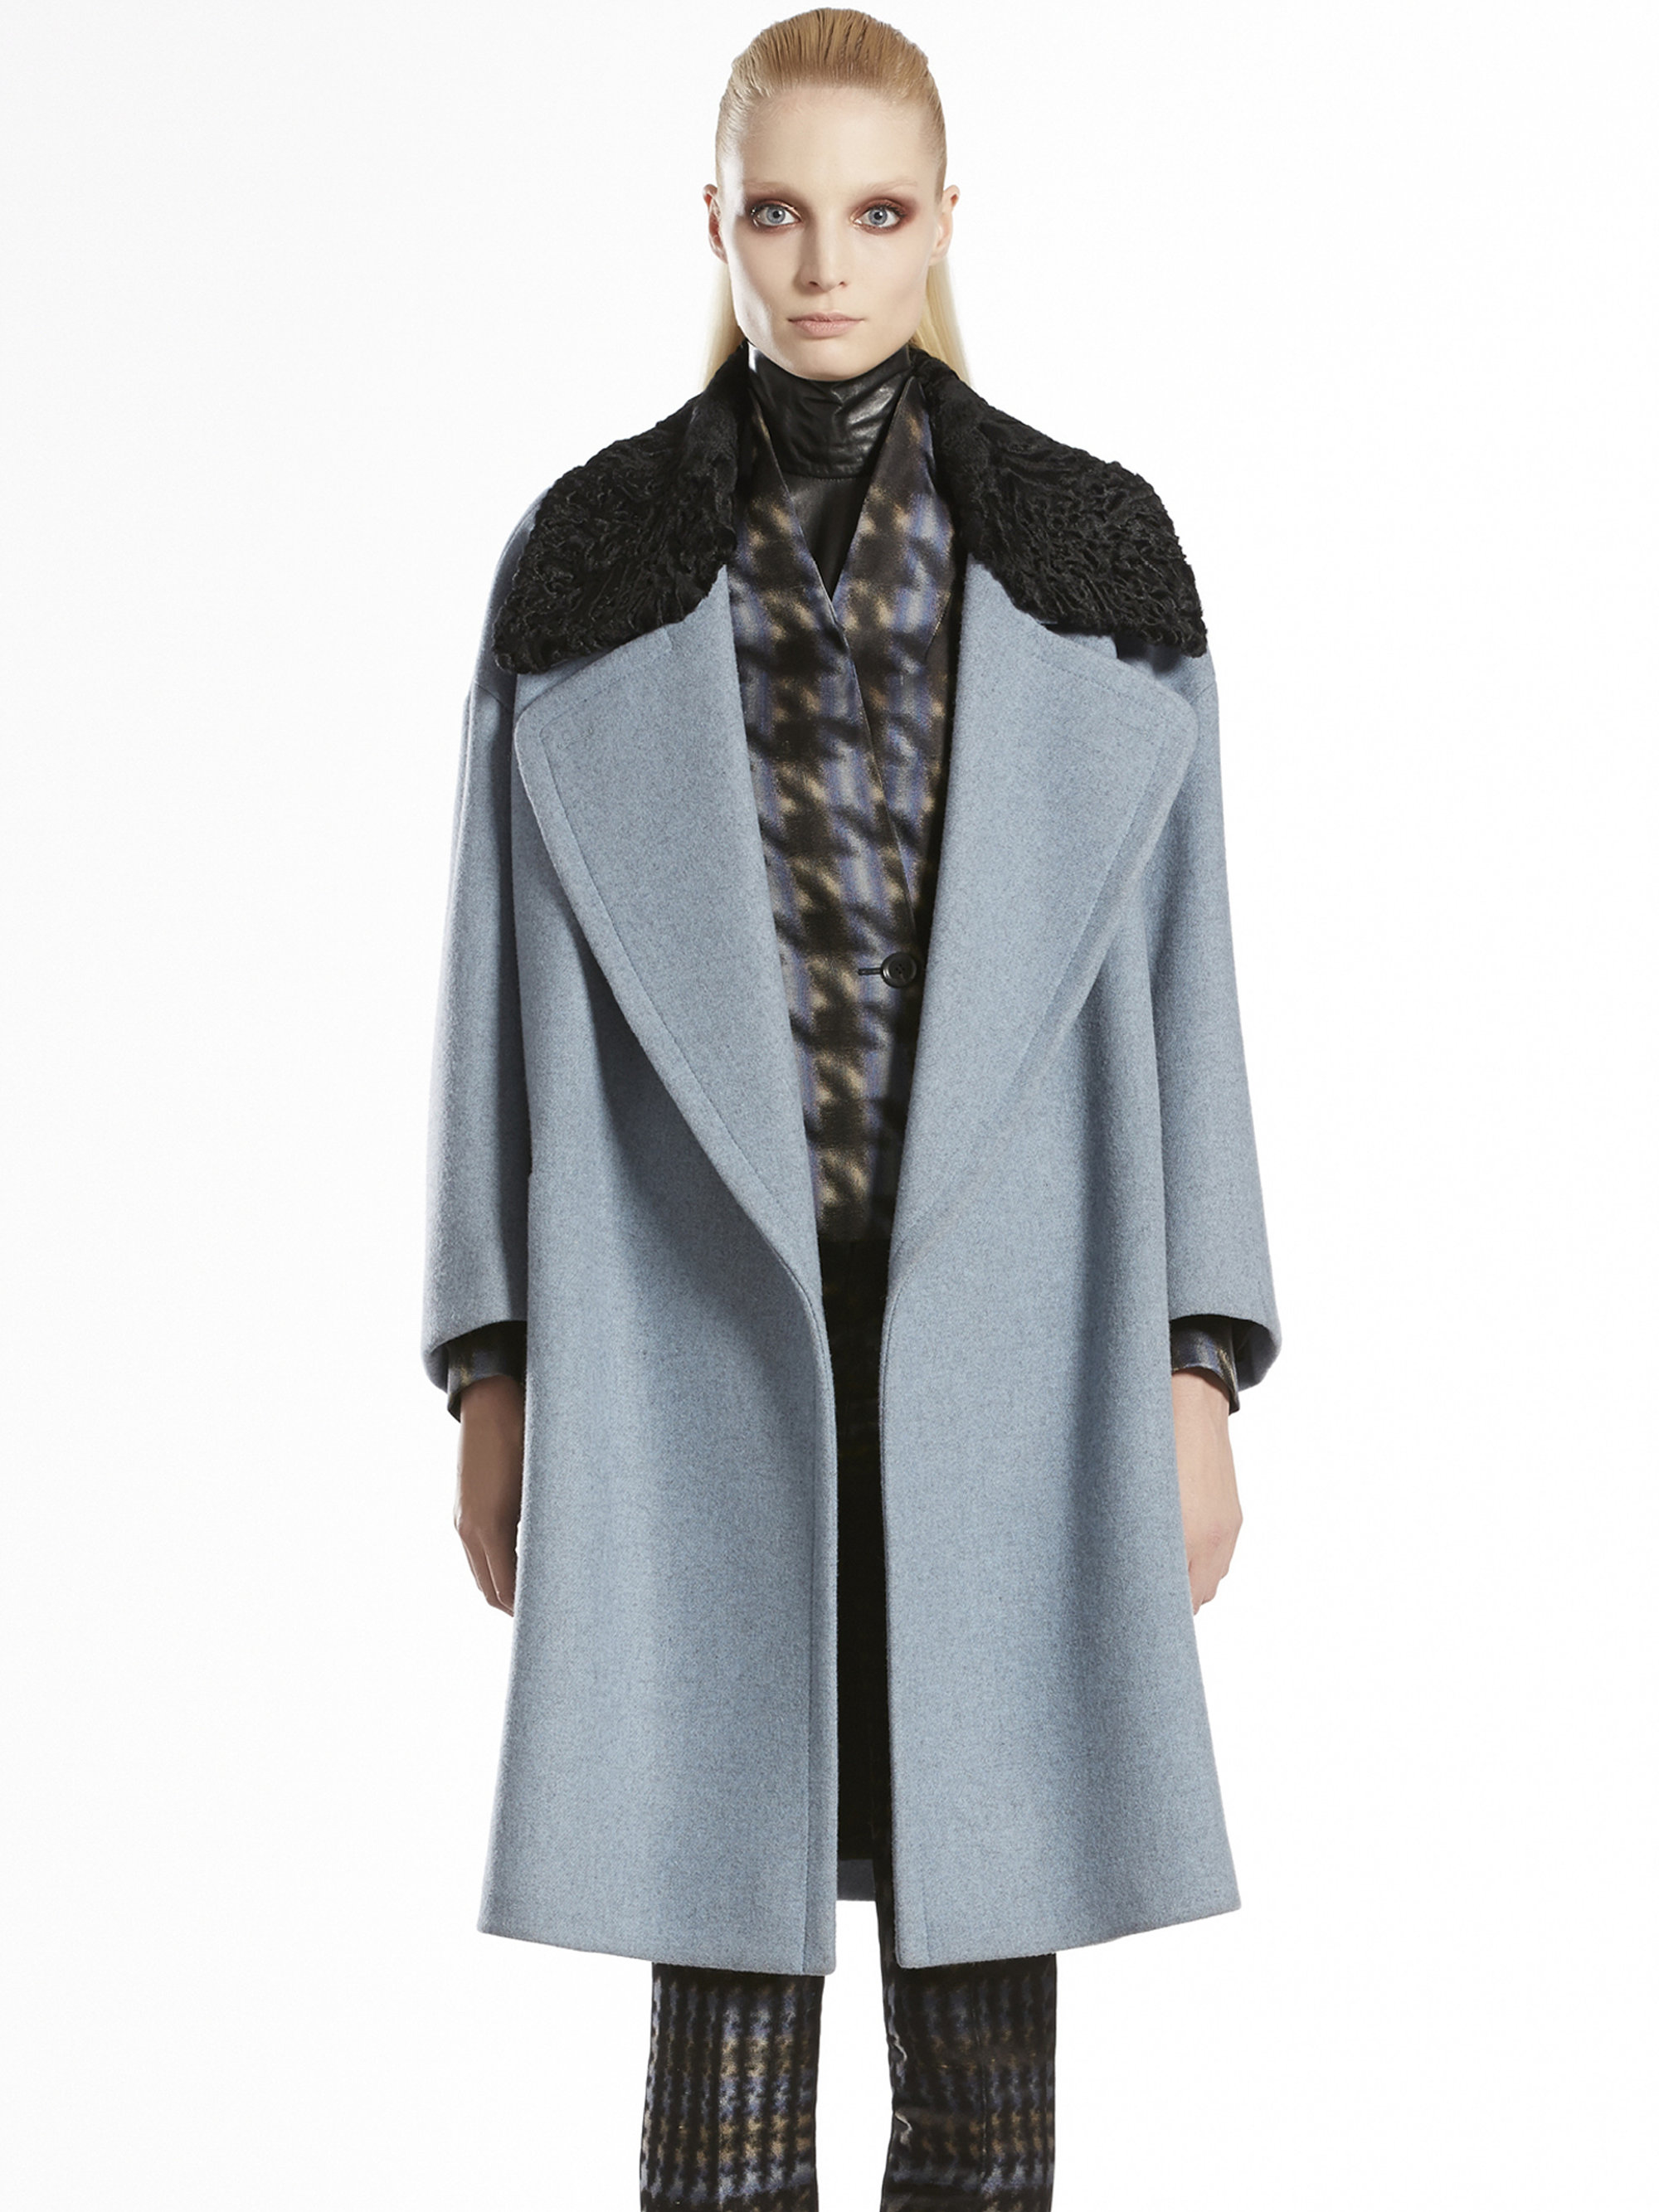 Gucci Wool Oversized Shearling Collar Coat in Blue | Lyst